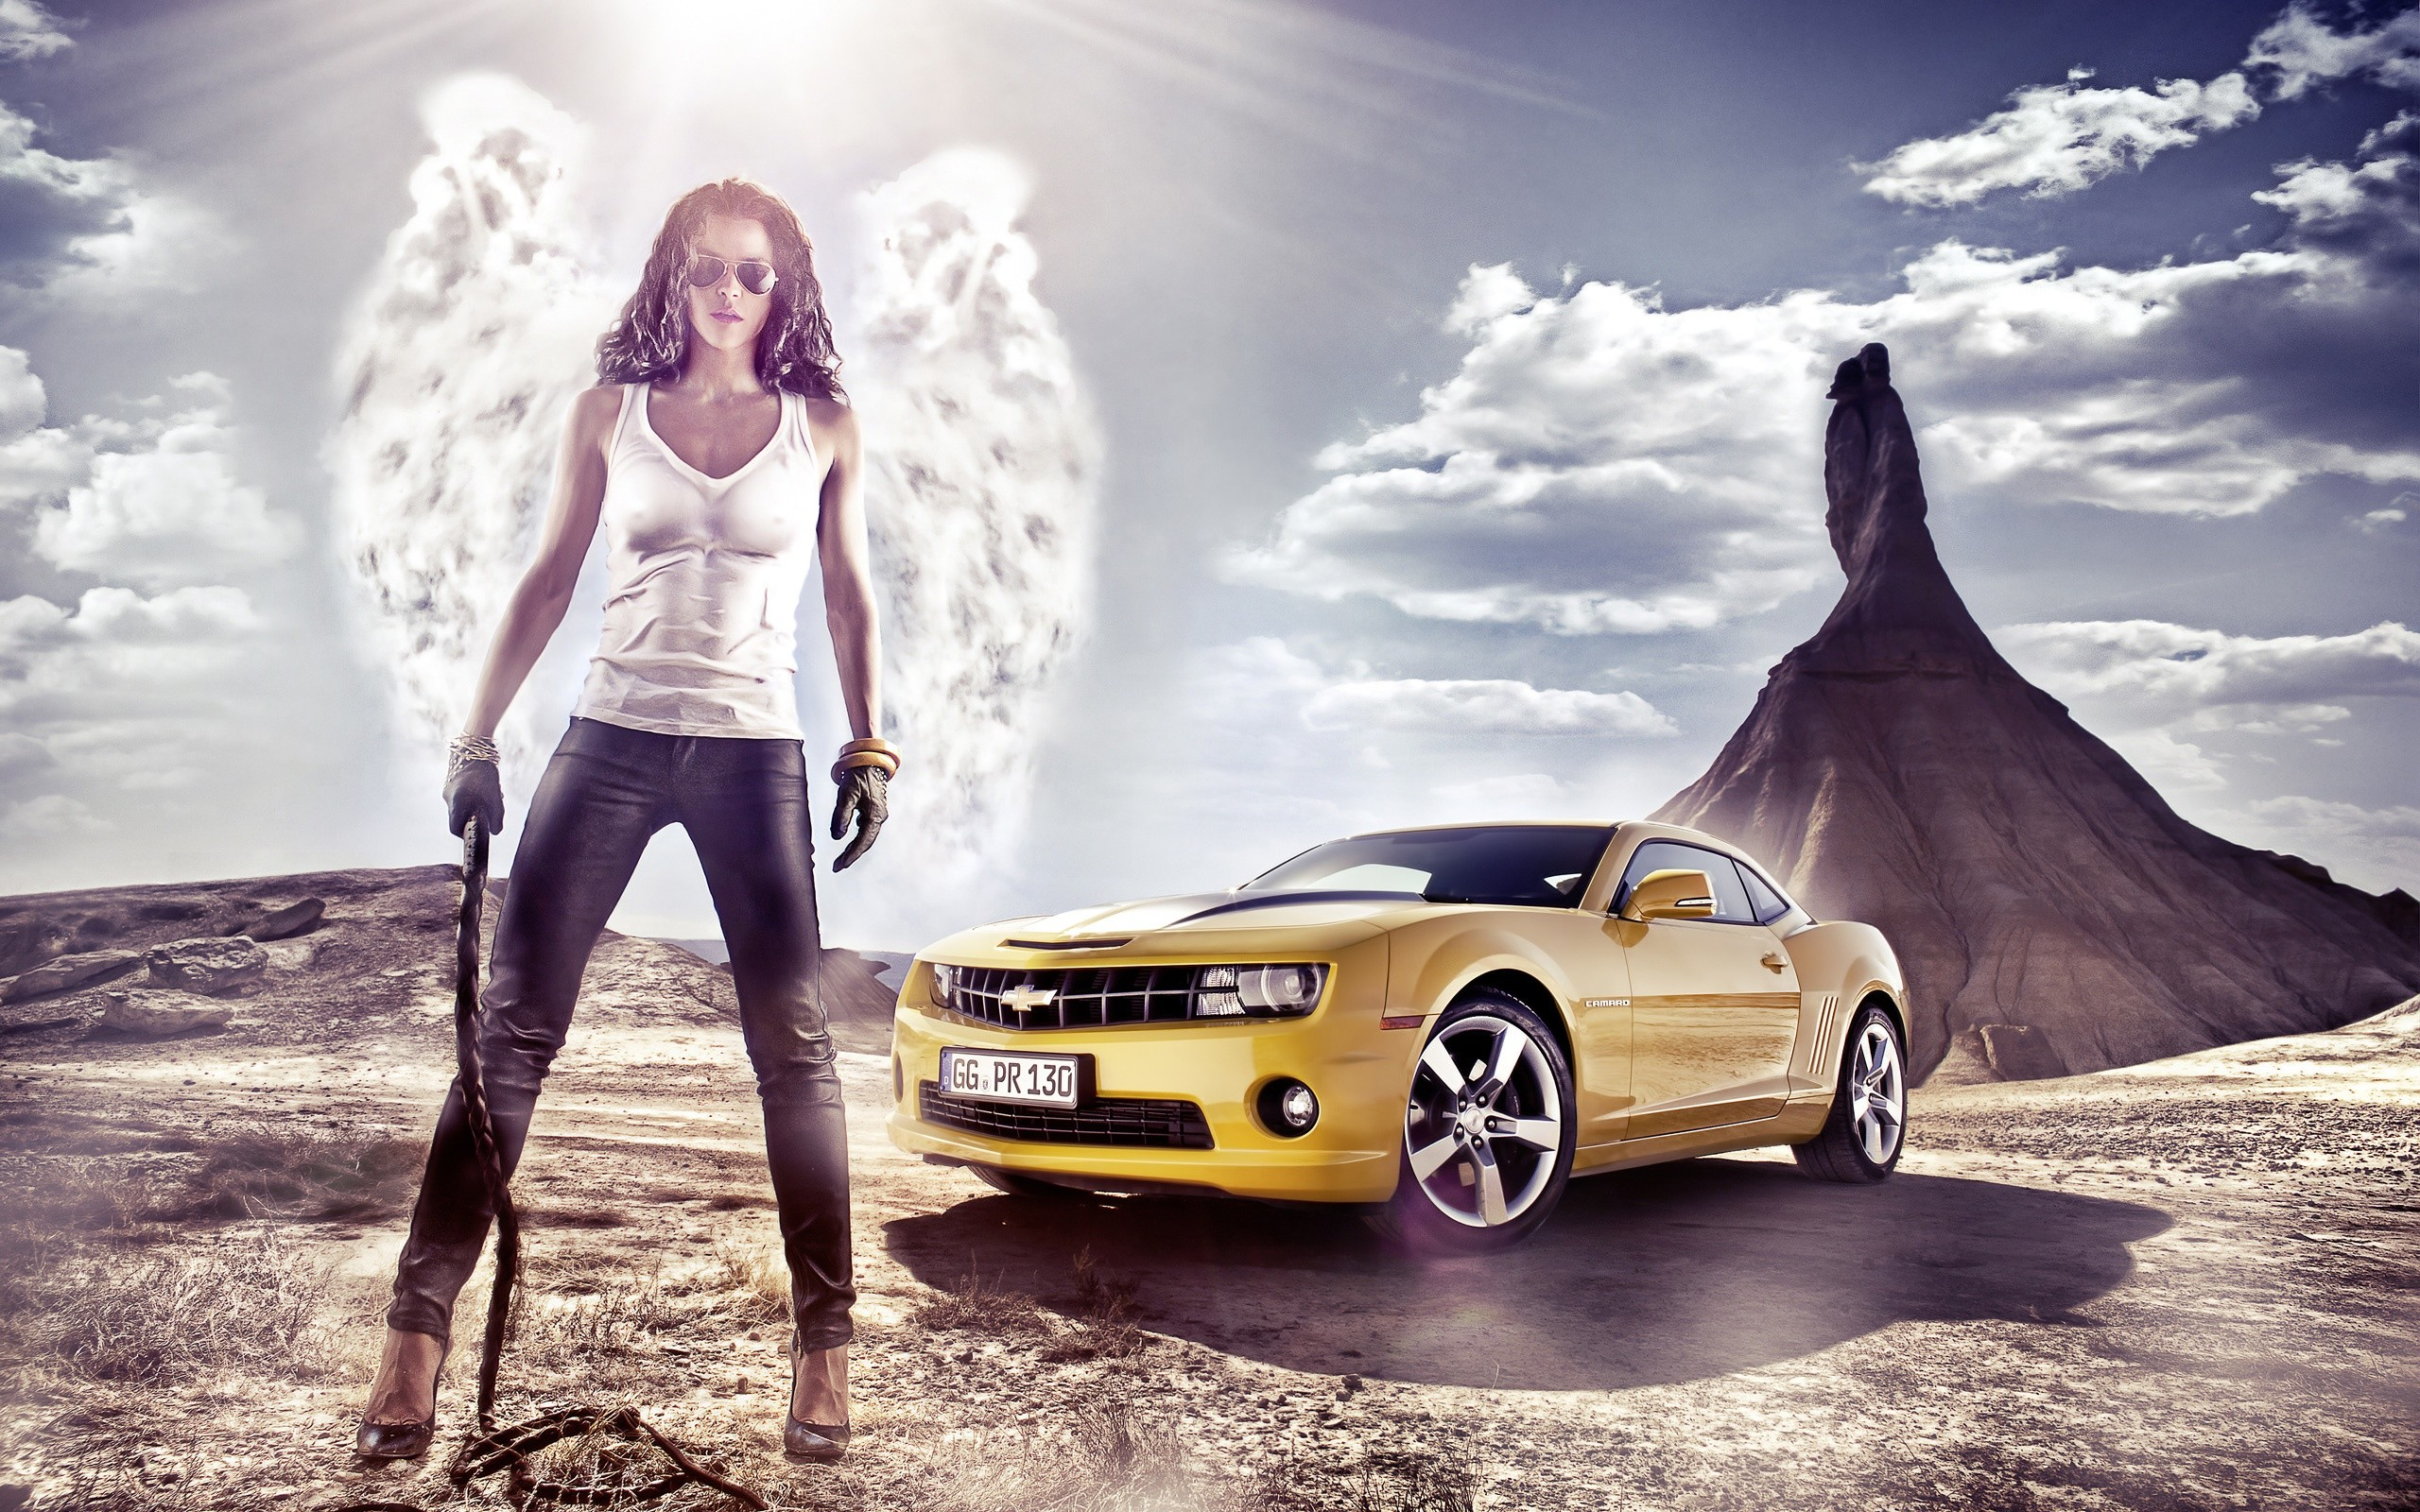 Home > Cars & Vehicules > Cars > Car Girl Backgrounds